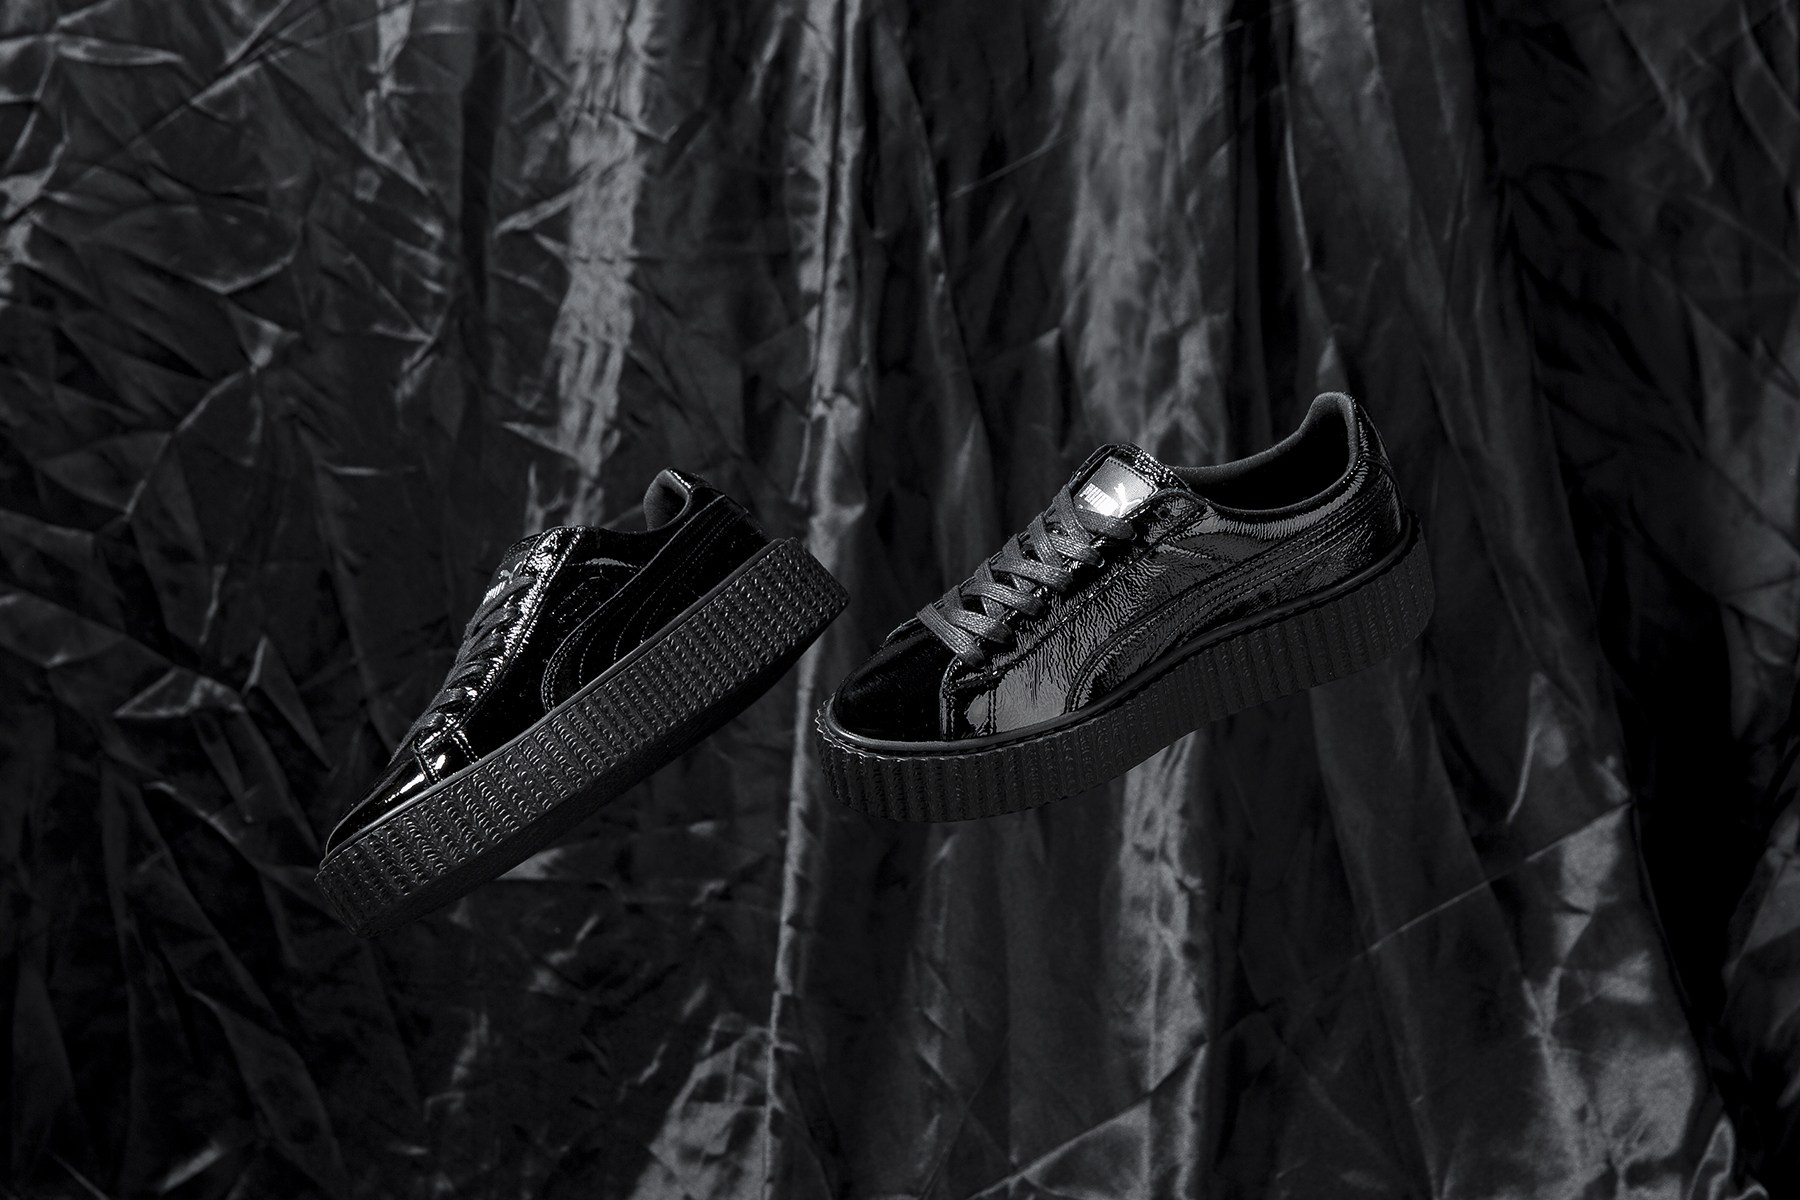 fenty-puma-cracked-leather-creeper-black-white-5